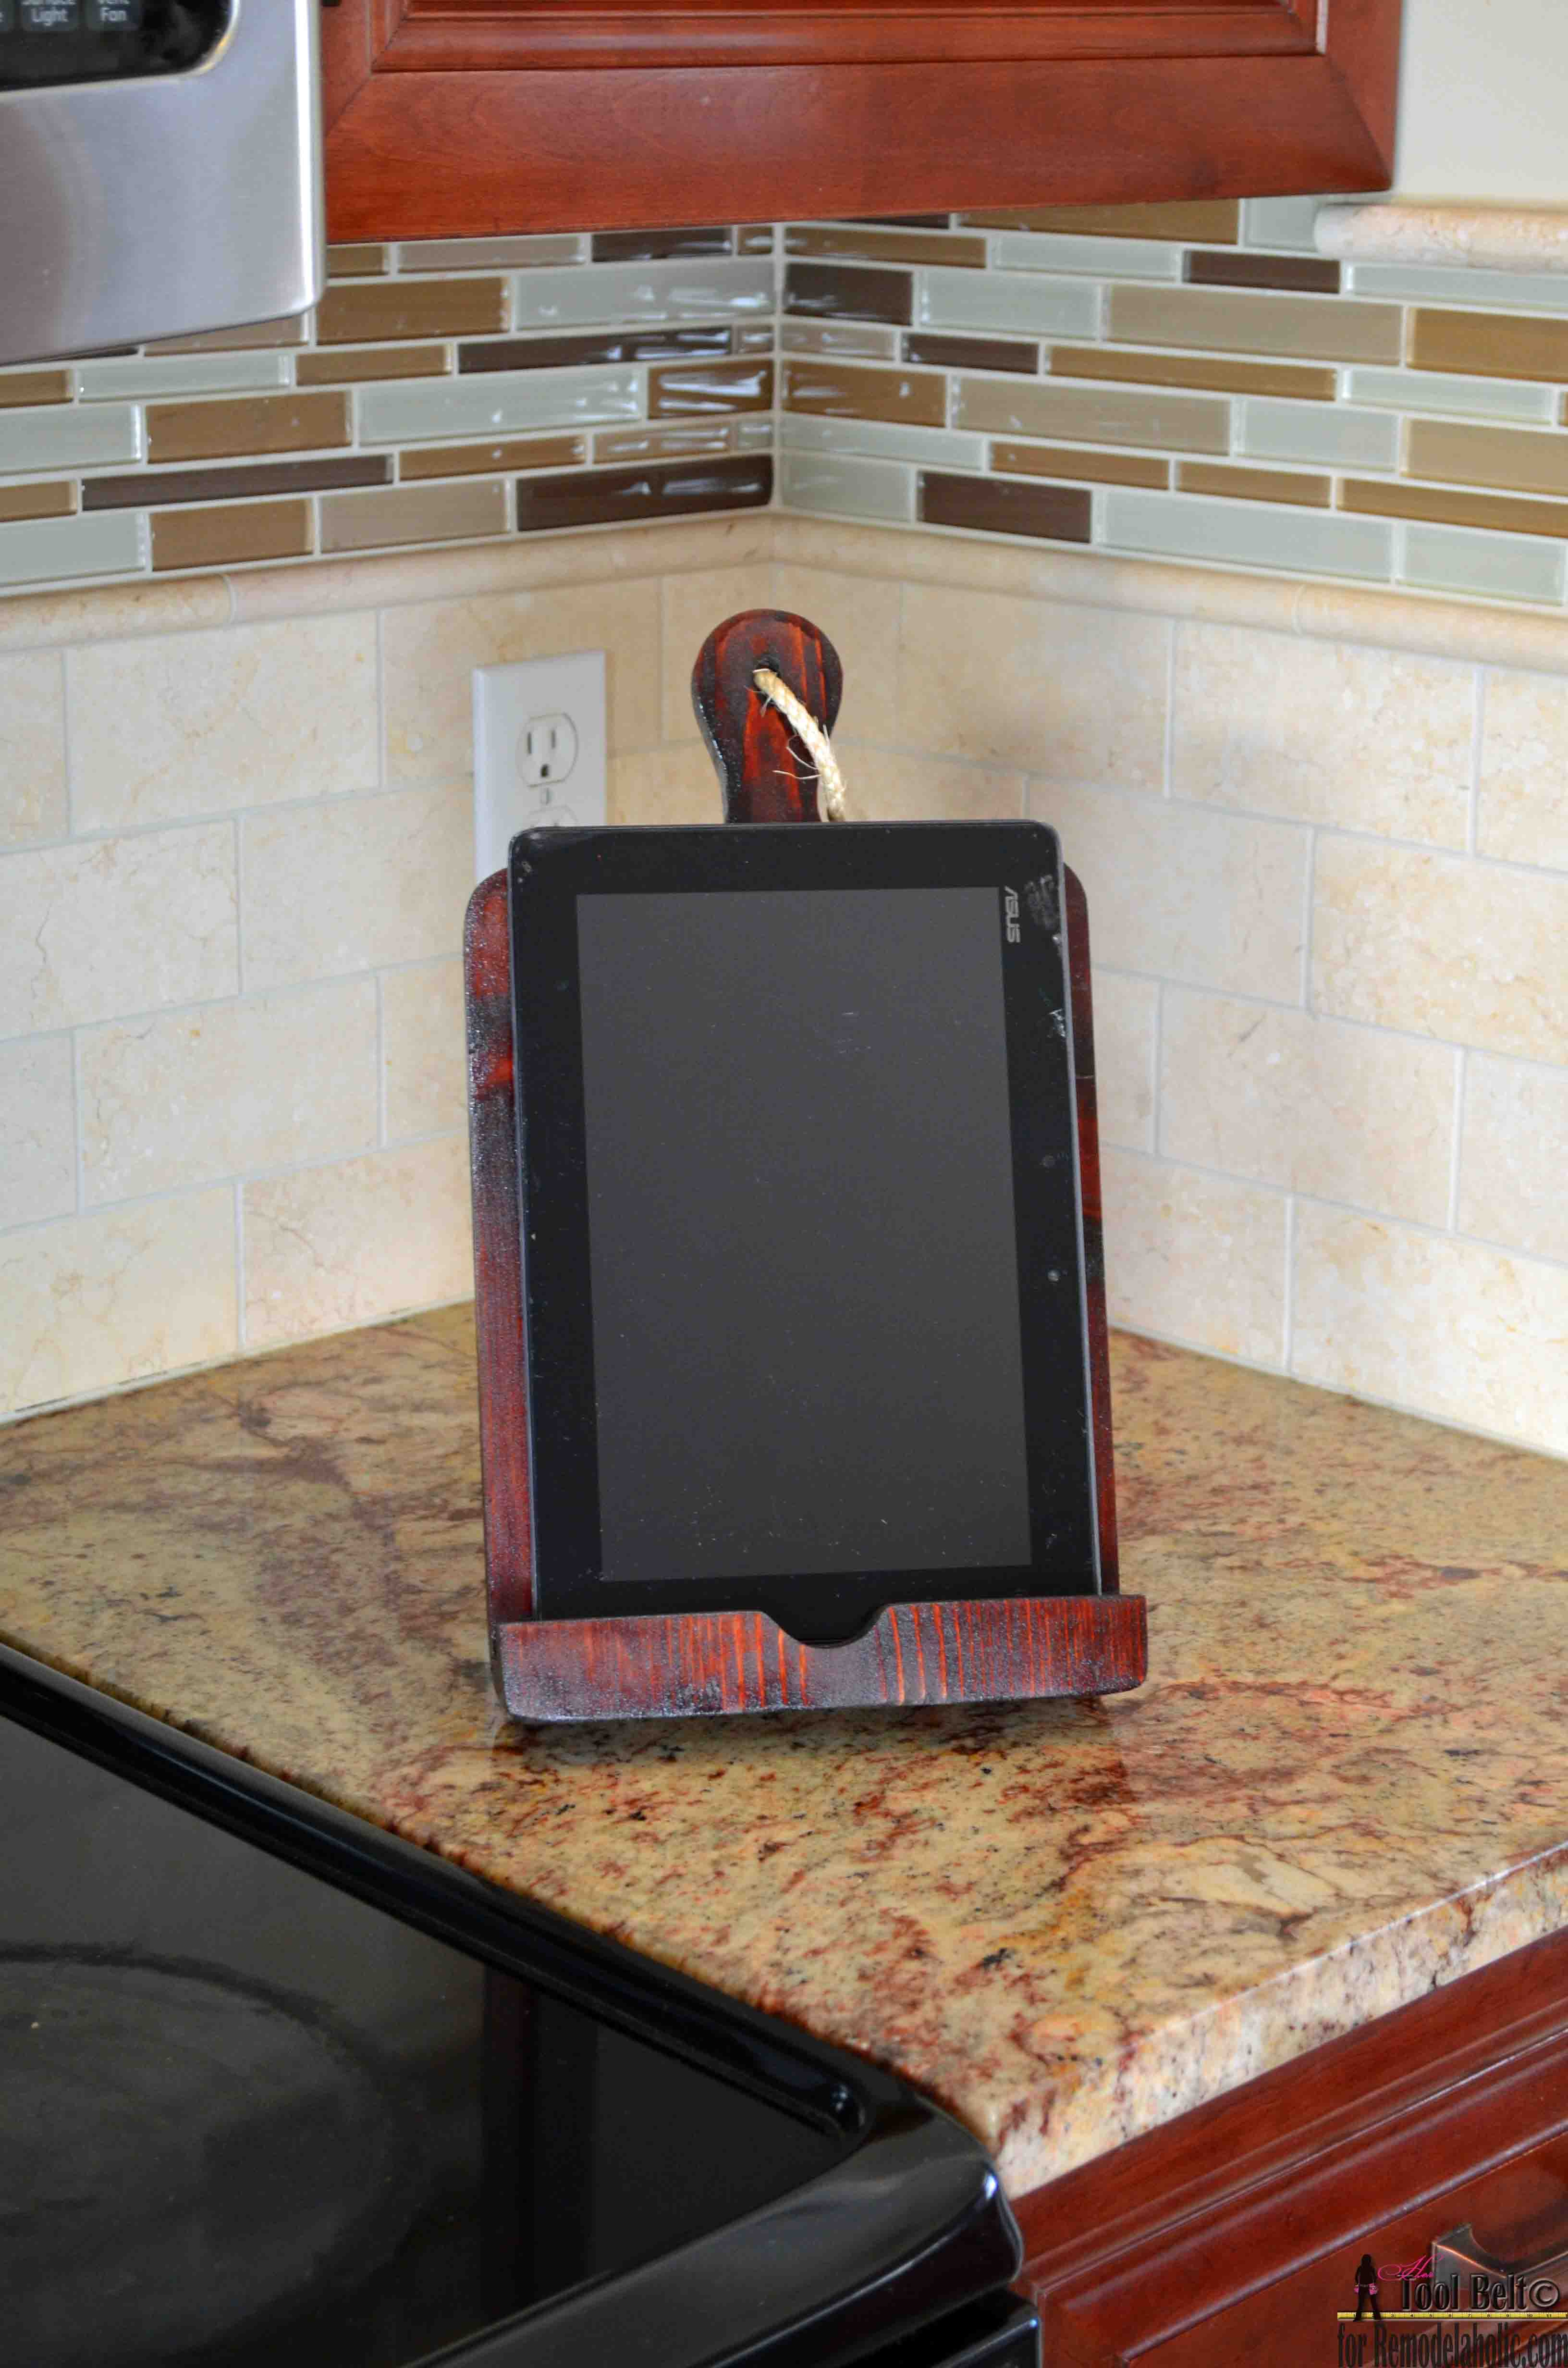 DIY-tablet-holder.jpg?ssl=1